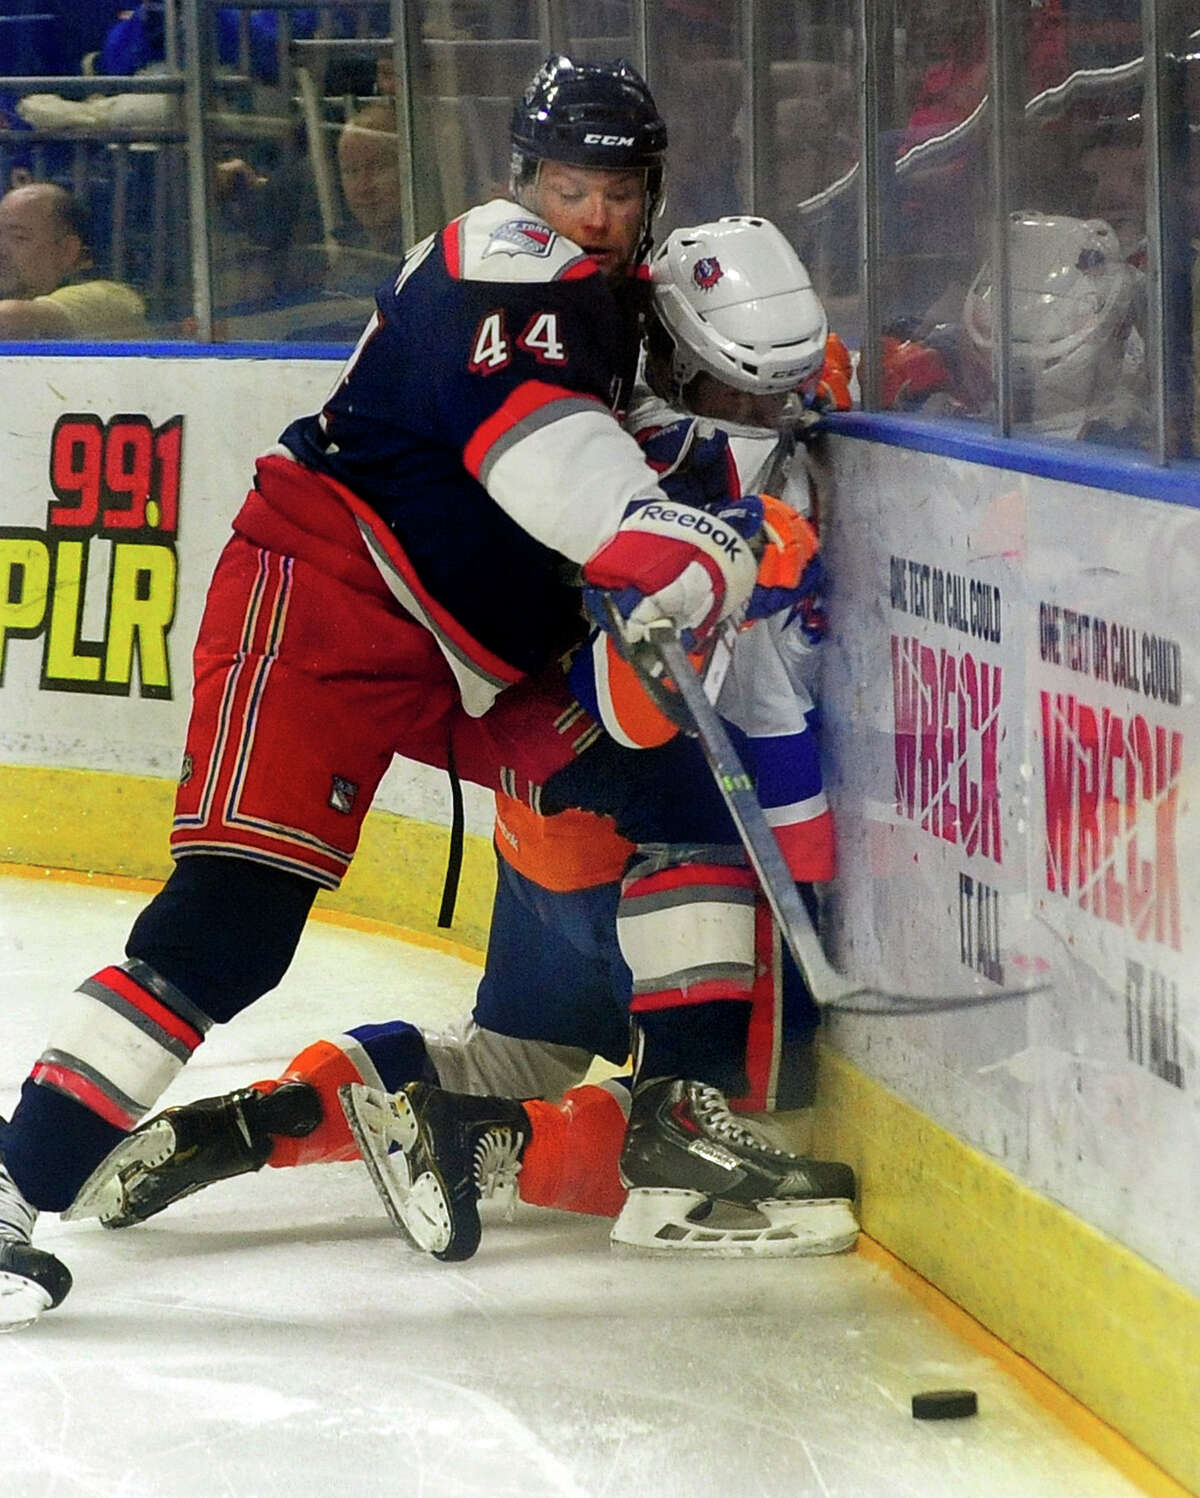 Hartford's Aaron Johnson checks Sound Tigers Riley Wetmore into the boards, during hockey action at the Webster Bank Arena in downtown Bridgeport, Conn. on Friday November 29, 2013.